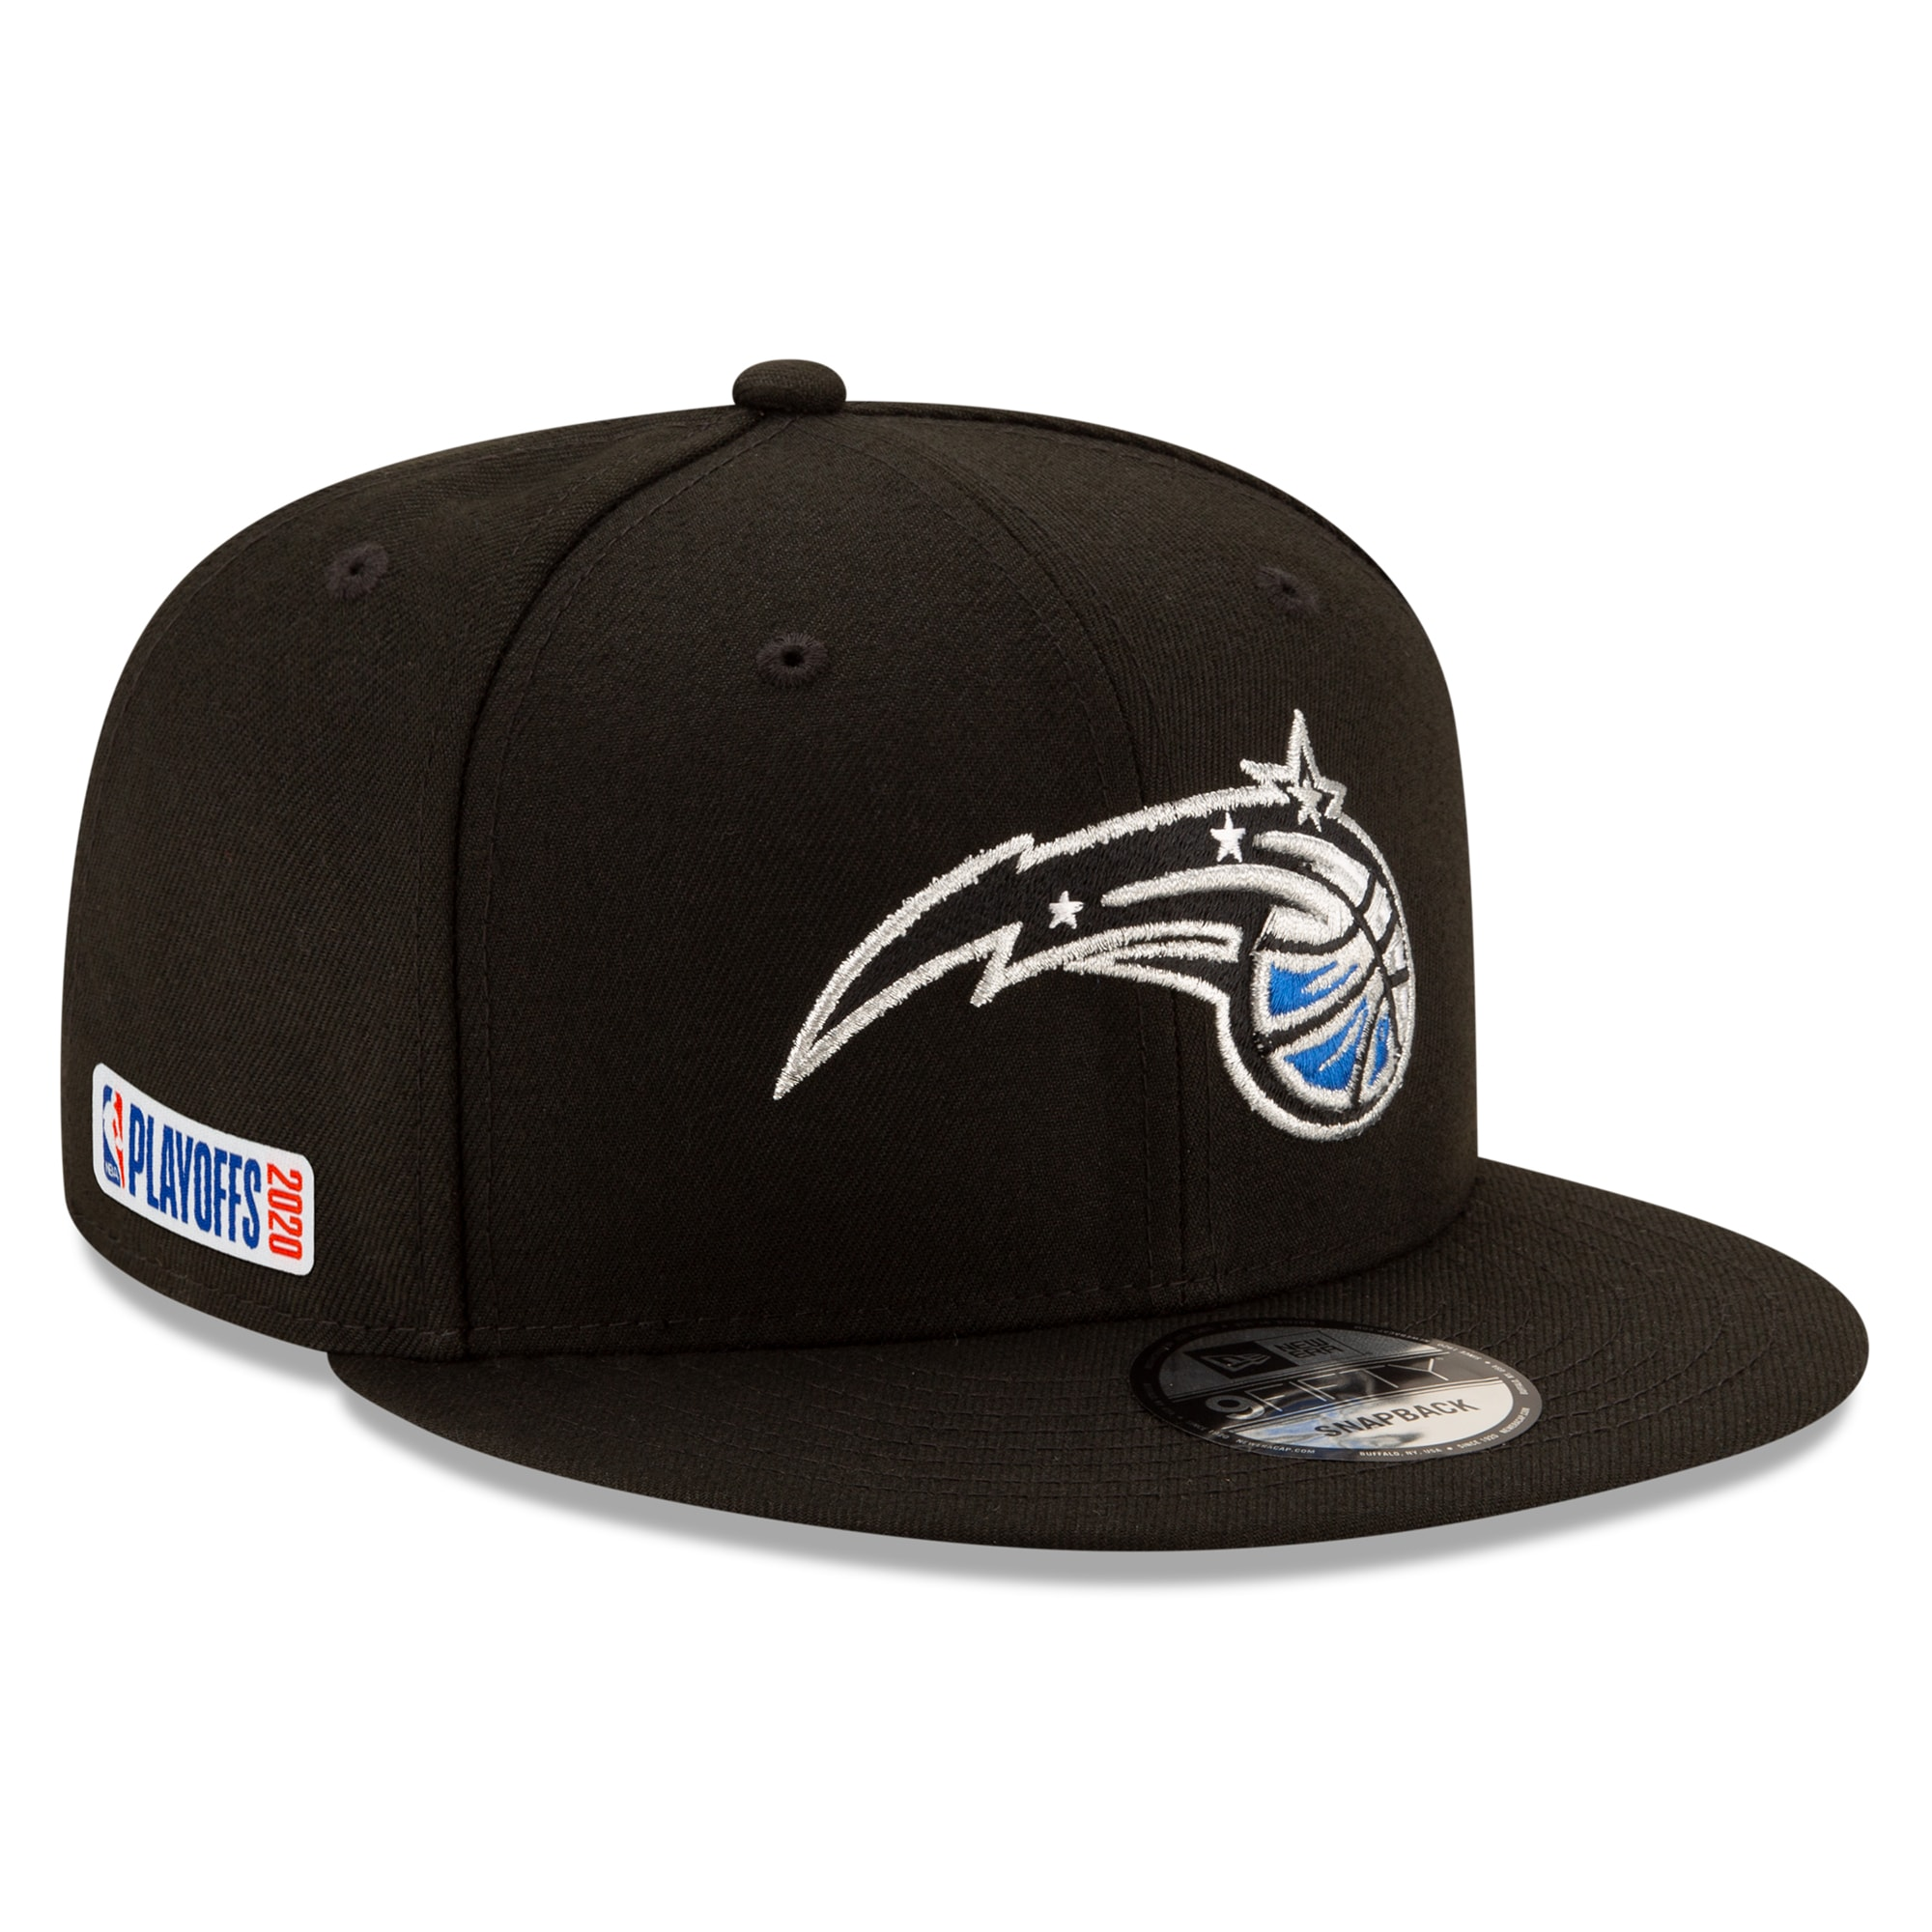 Orlando Magic New Era 2020 NBA Playoffs Bound 9FIFTY Snapback Adjustable Hat - Black